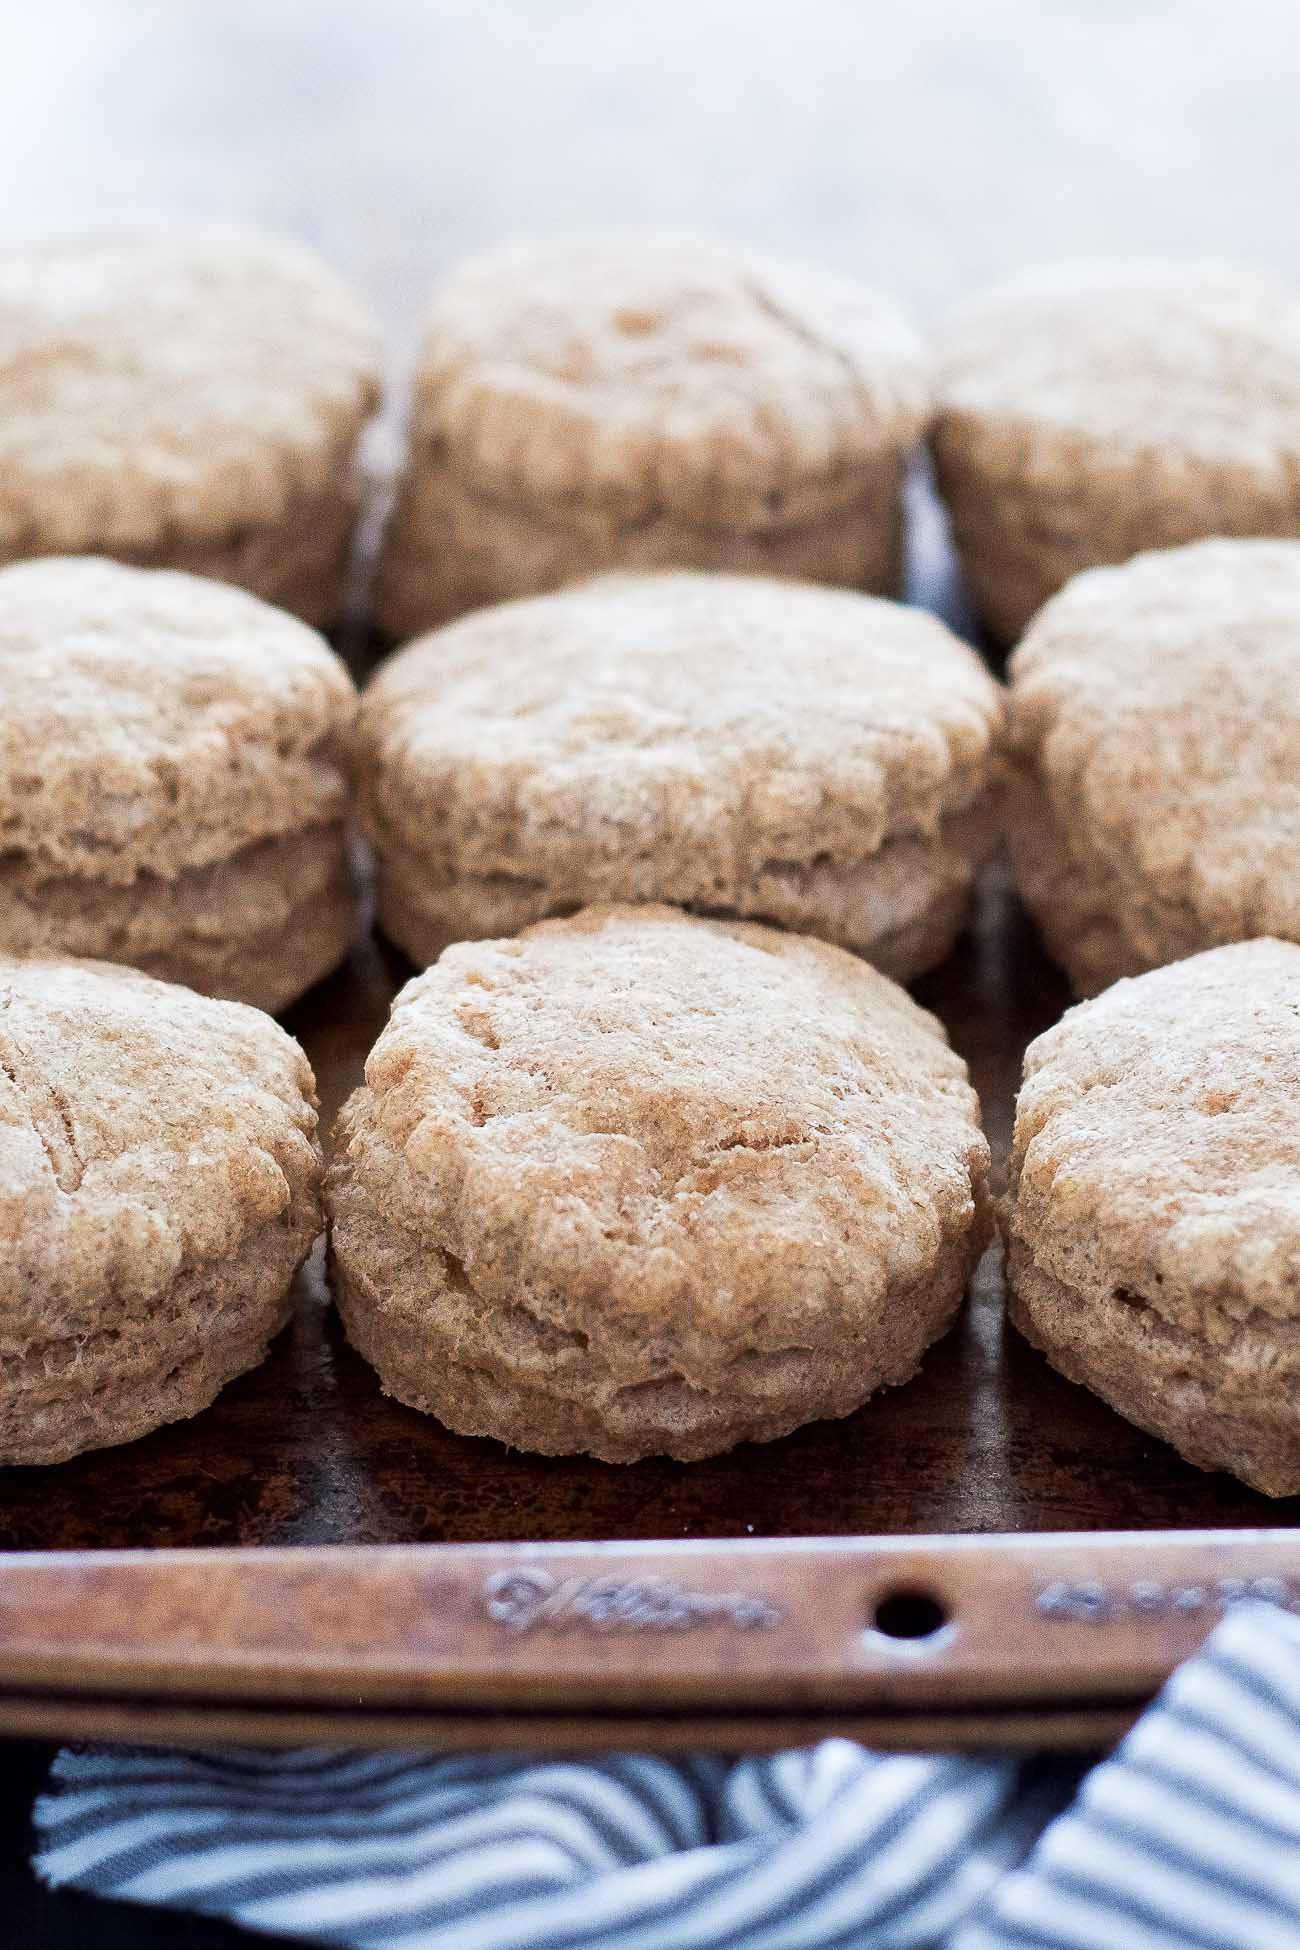 These Flaky Whole Wheat Biscuits are tender and are made with wholesome ingredients, making them guilt free. Plus they require one bowl and take only 2o minutes! These biscuits will be a family favorite for sure!